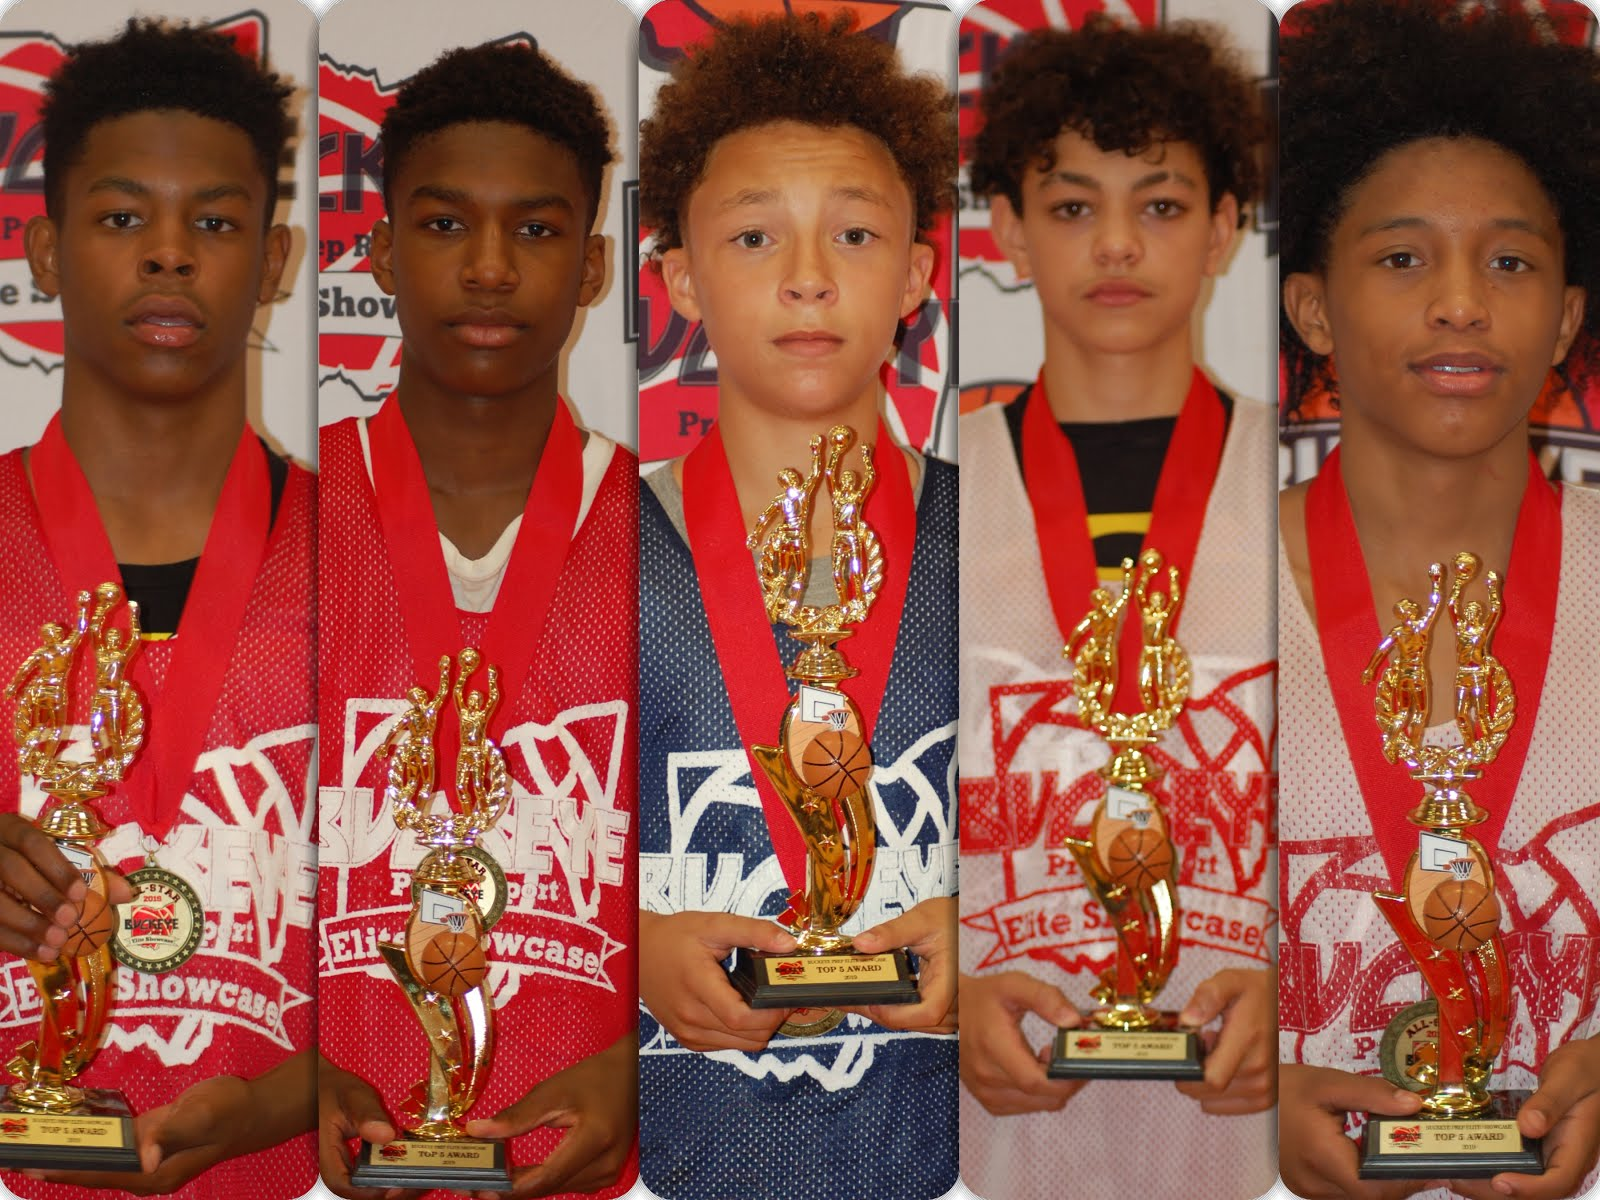 Buckeye Prep Elite Showcase Rankings